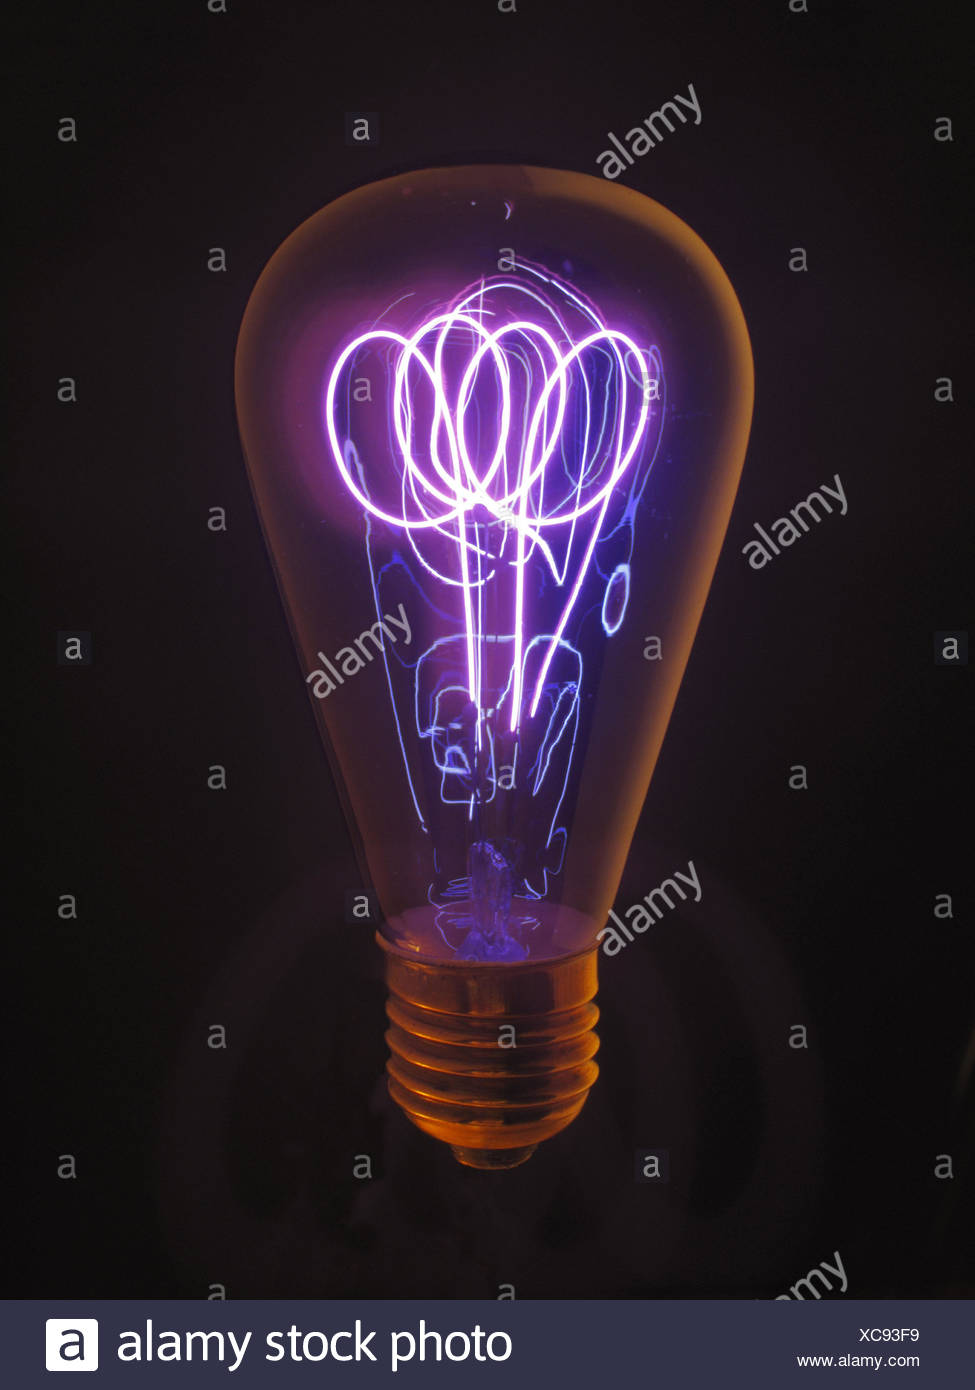 Light bulb, wire, shine, blast energy, electricity, electrically ...